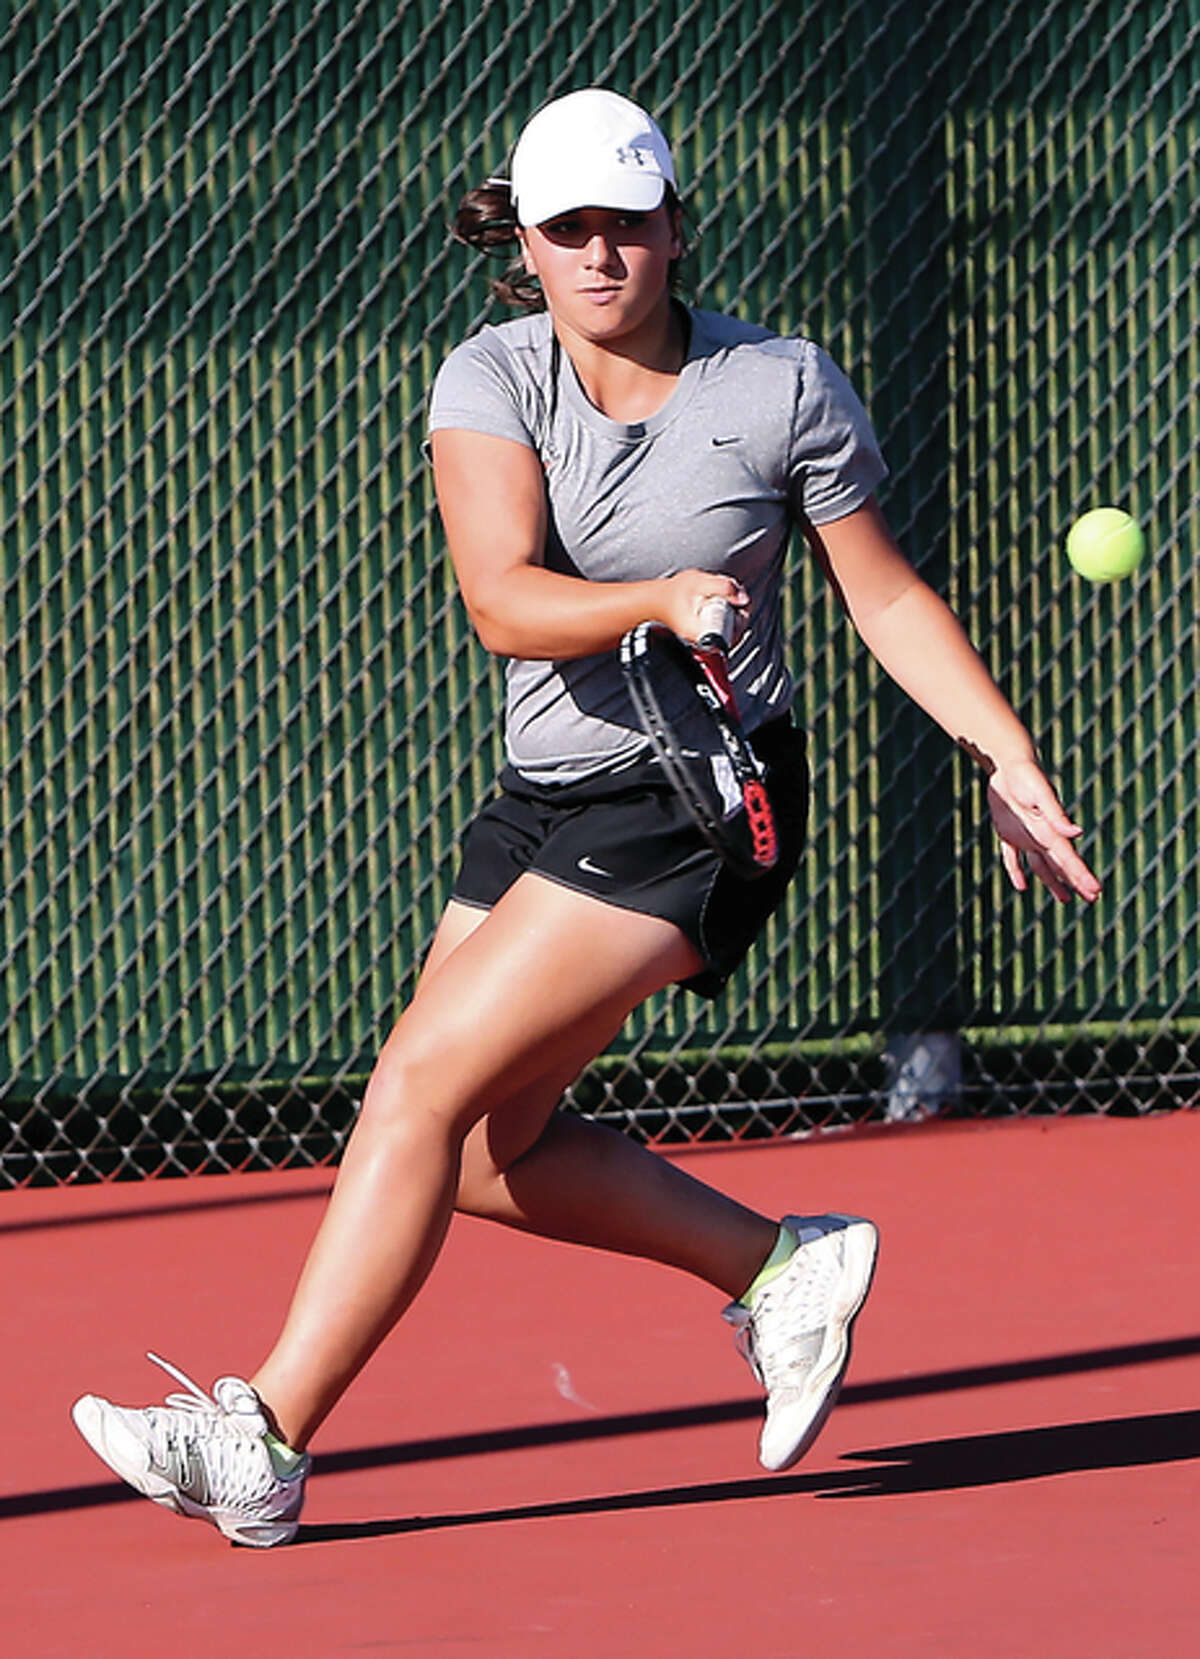 Edwardsville's Natalie Karibian, shown in a match last season, won the singles championship Saturday at the Belleville East Class 2A Sectional to help the Tigers earn their 20th straight sectional title.